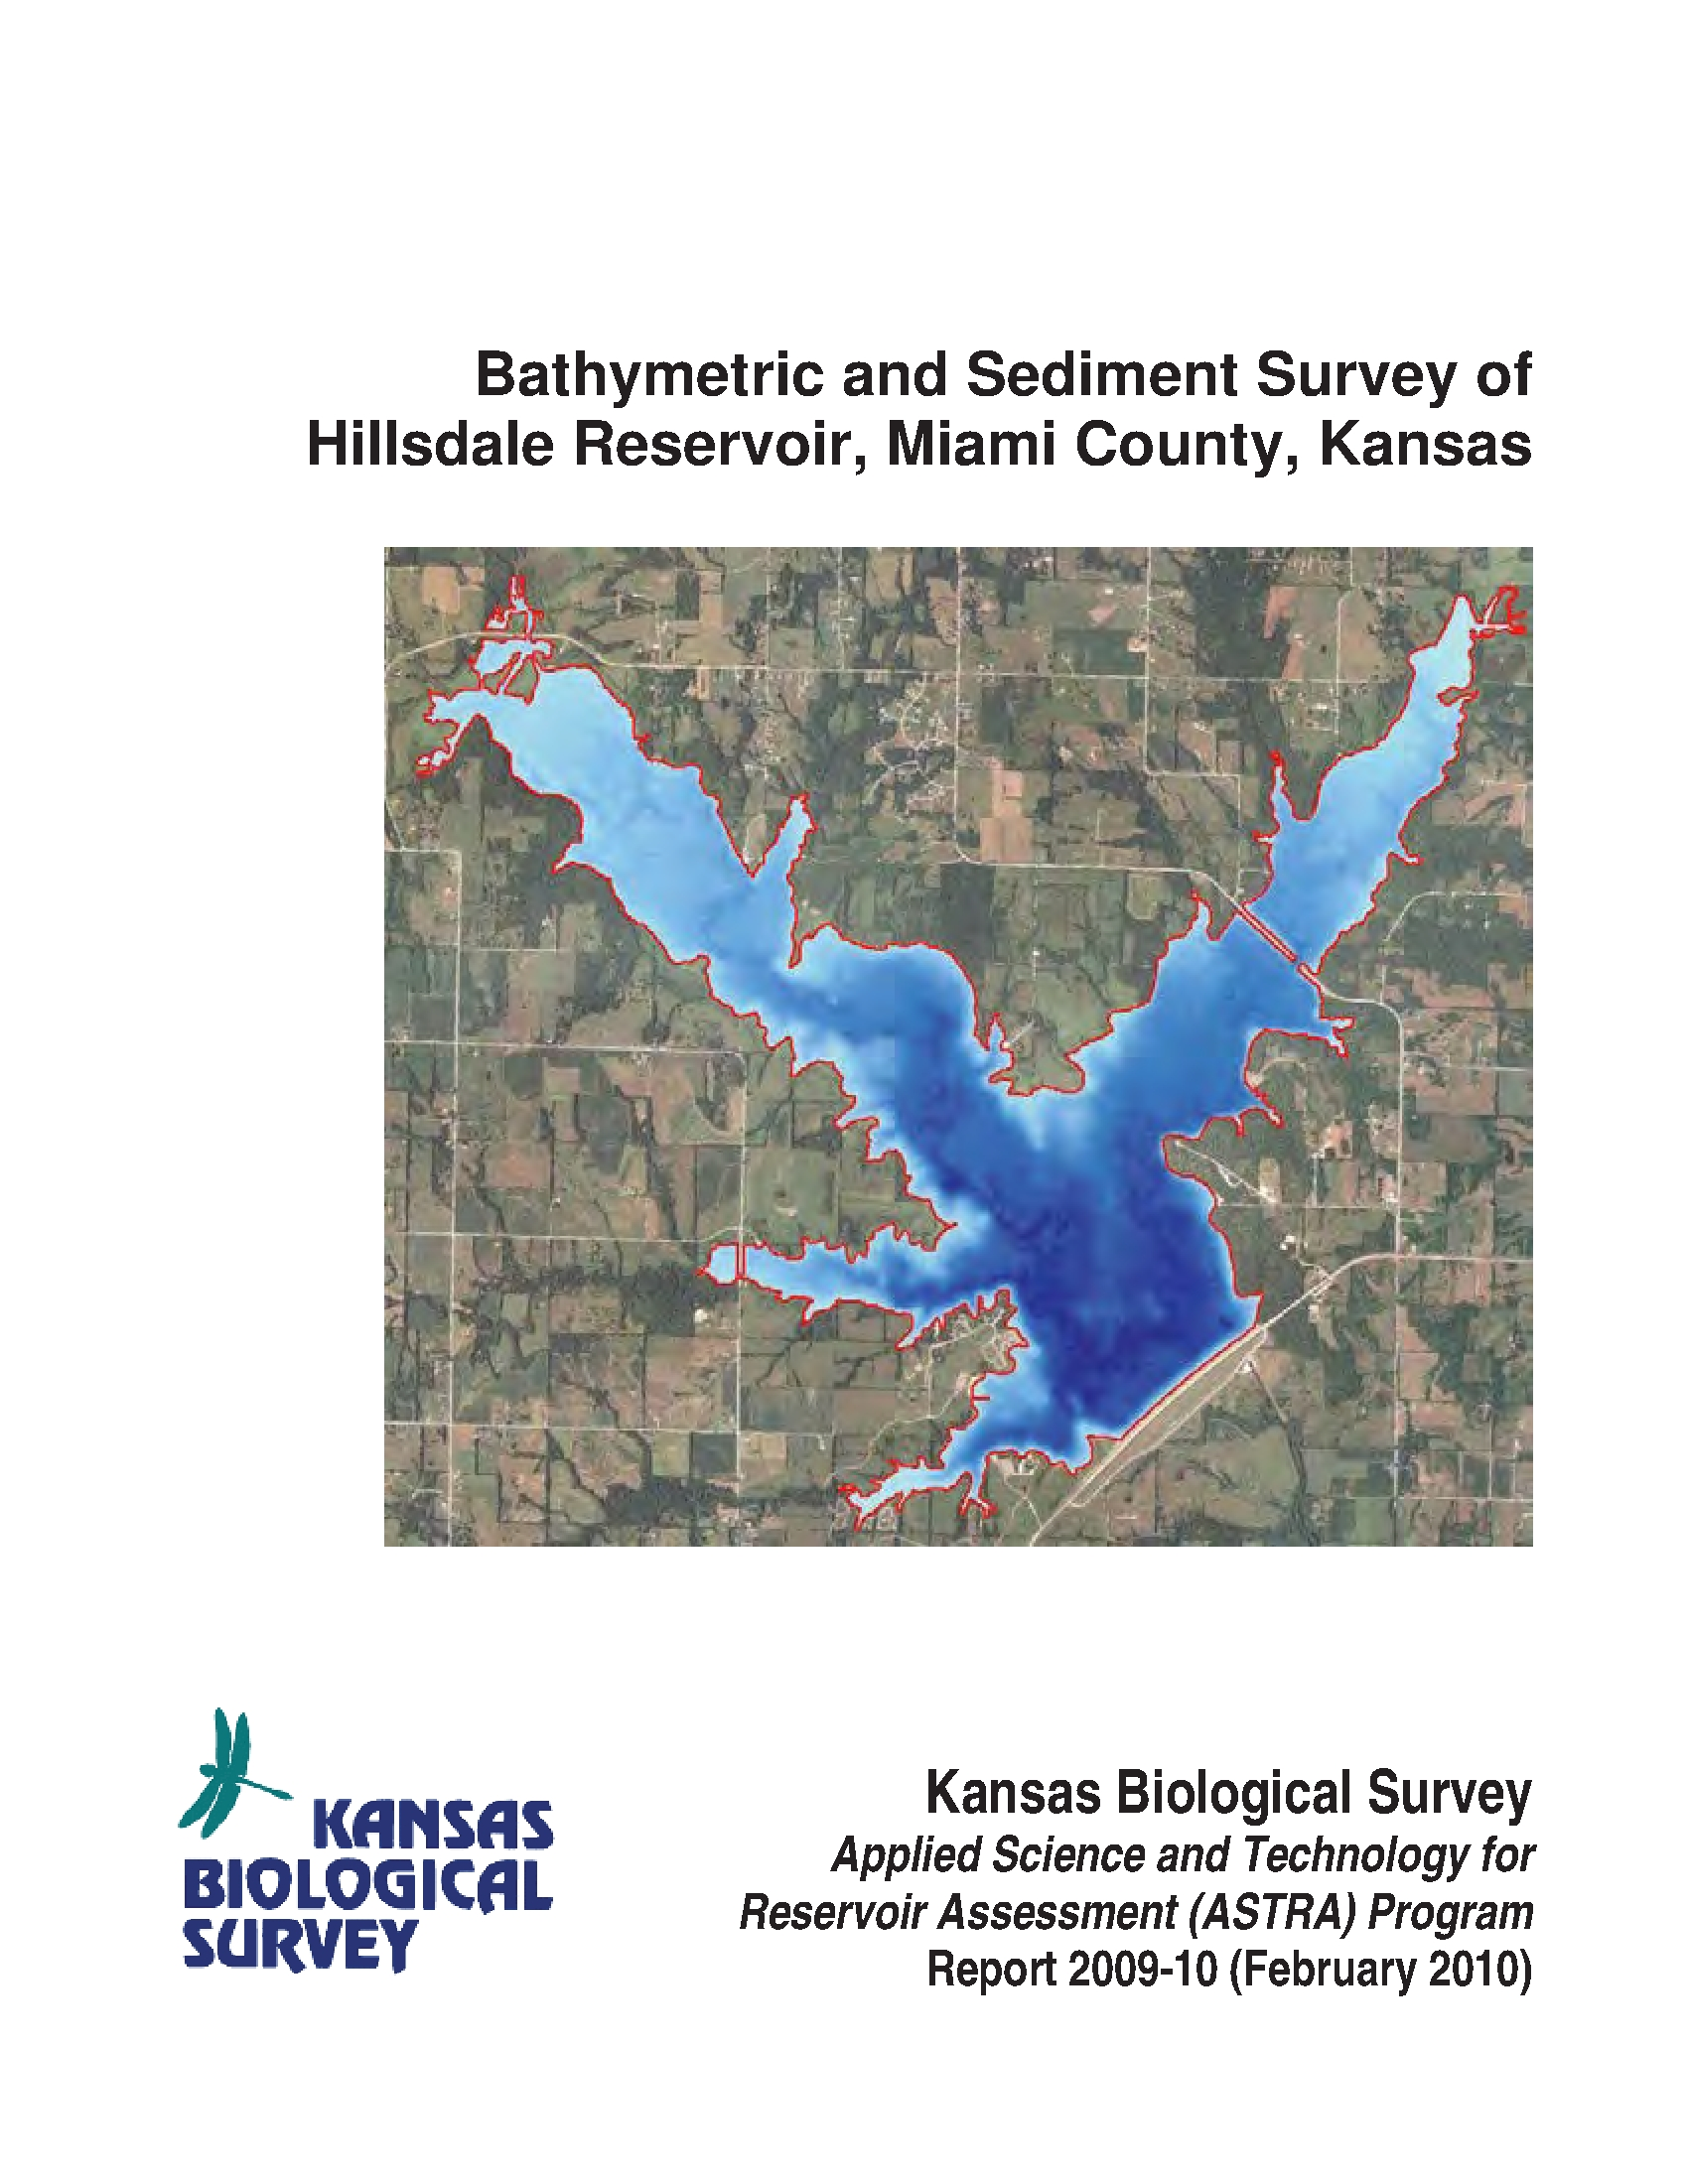 Bathymetric And Sediment Survey Of Hillsdale Reservoir in Miami County Kansas Map